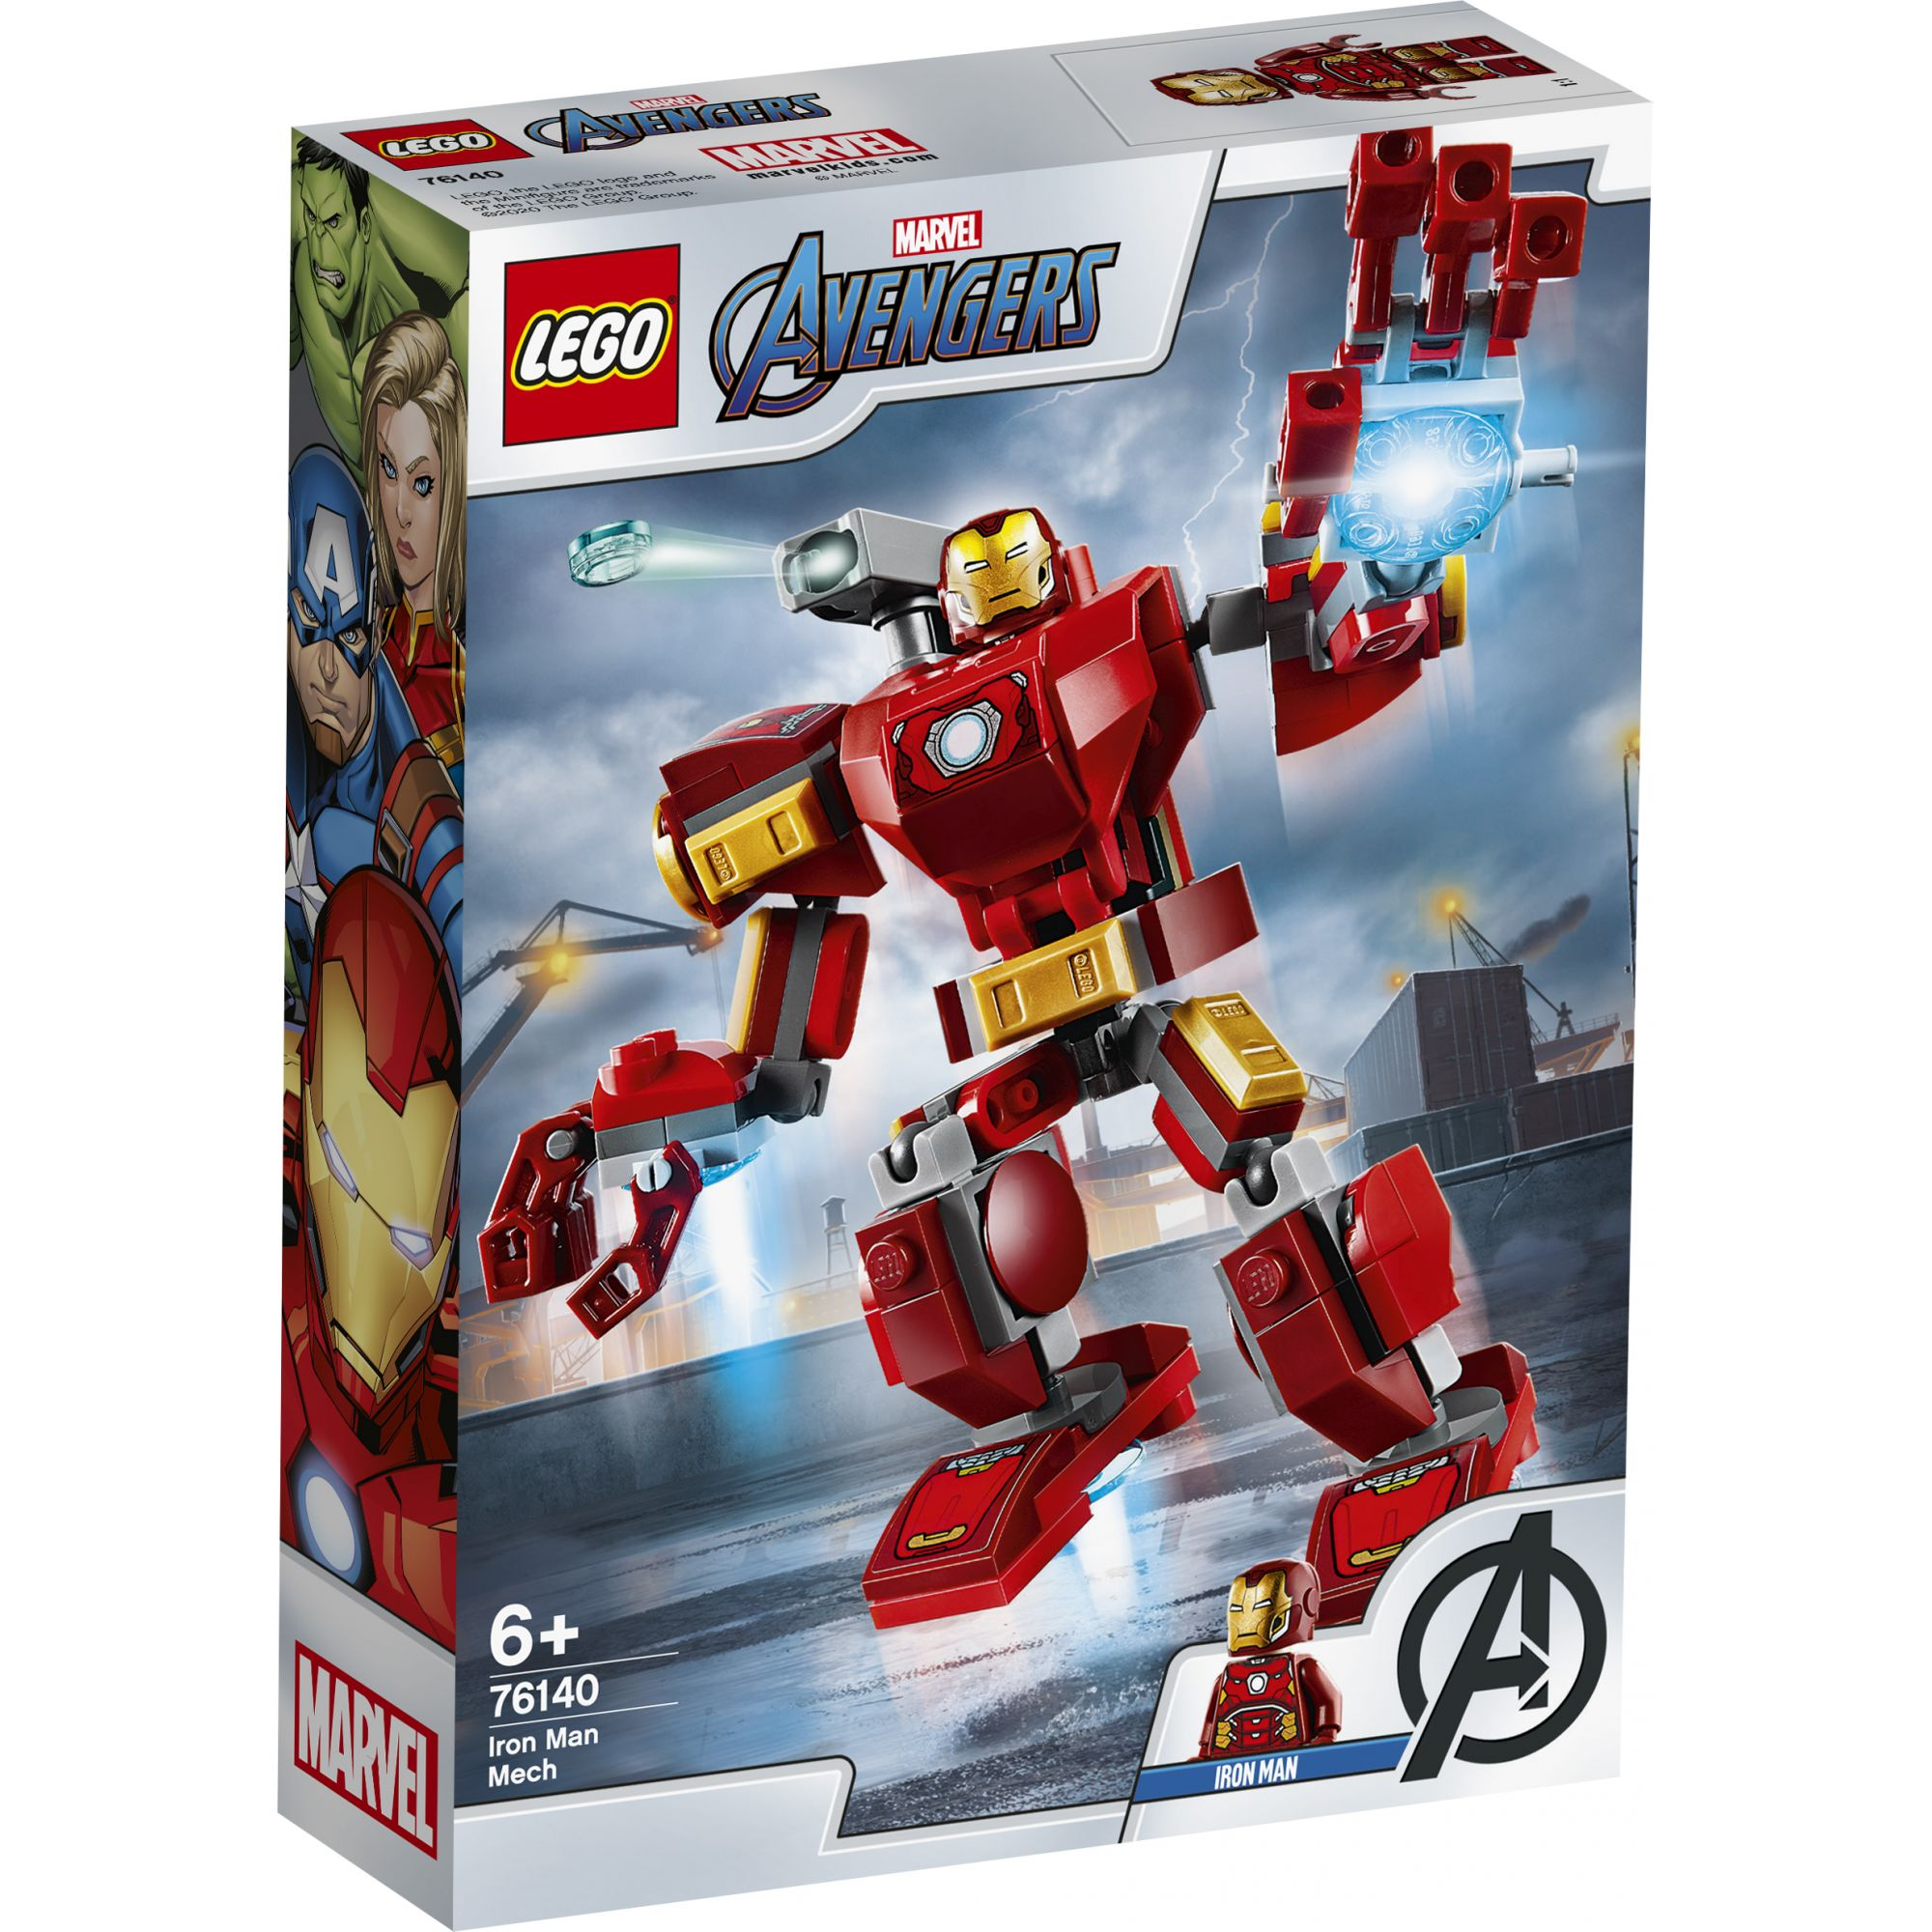 LEGO Marvel Avengers Movie 4 Mech Iron Man - 76140